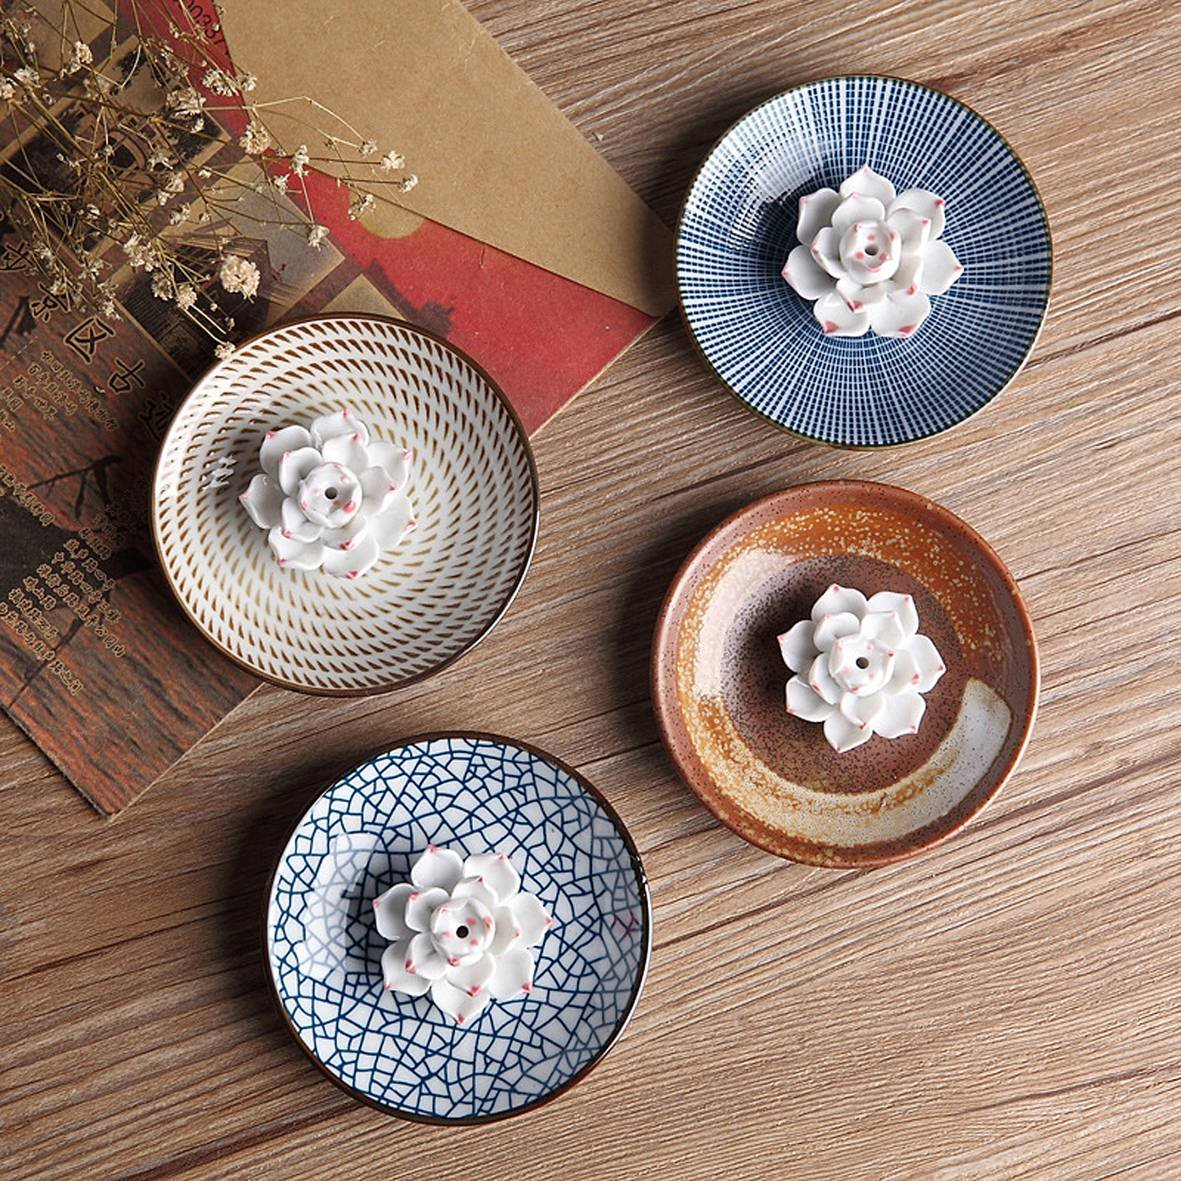 Set of 4 pack Japanese Zen Style Dinnerware Plate Dipping Sauce Dishes, for Appetizer, Dessert, Salad, Snack, Sushi, Fruit, Bread (3.8'')